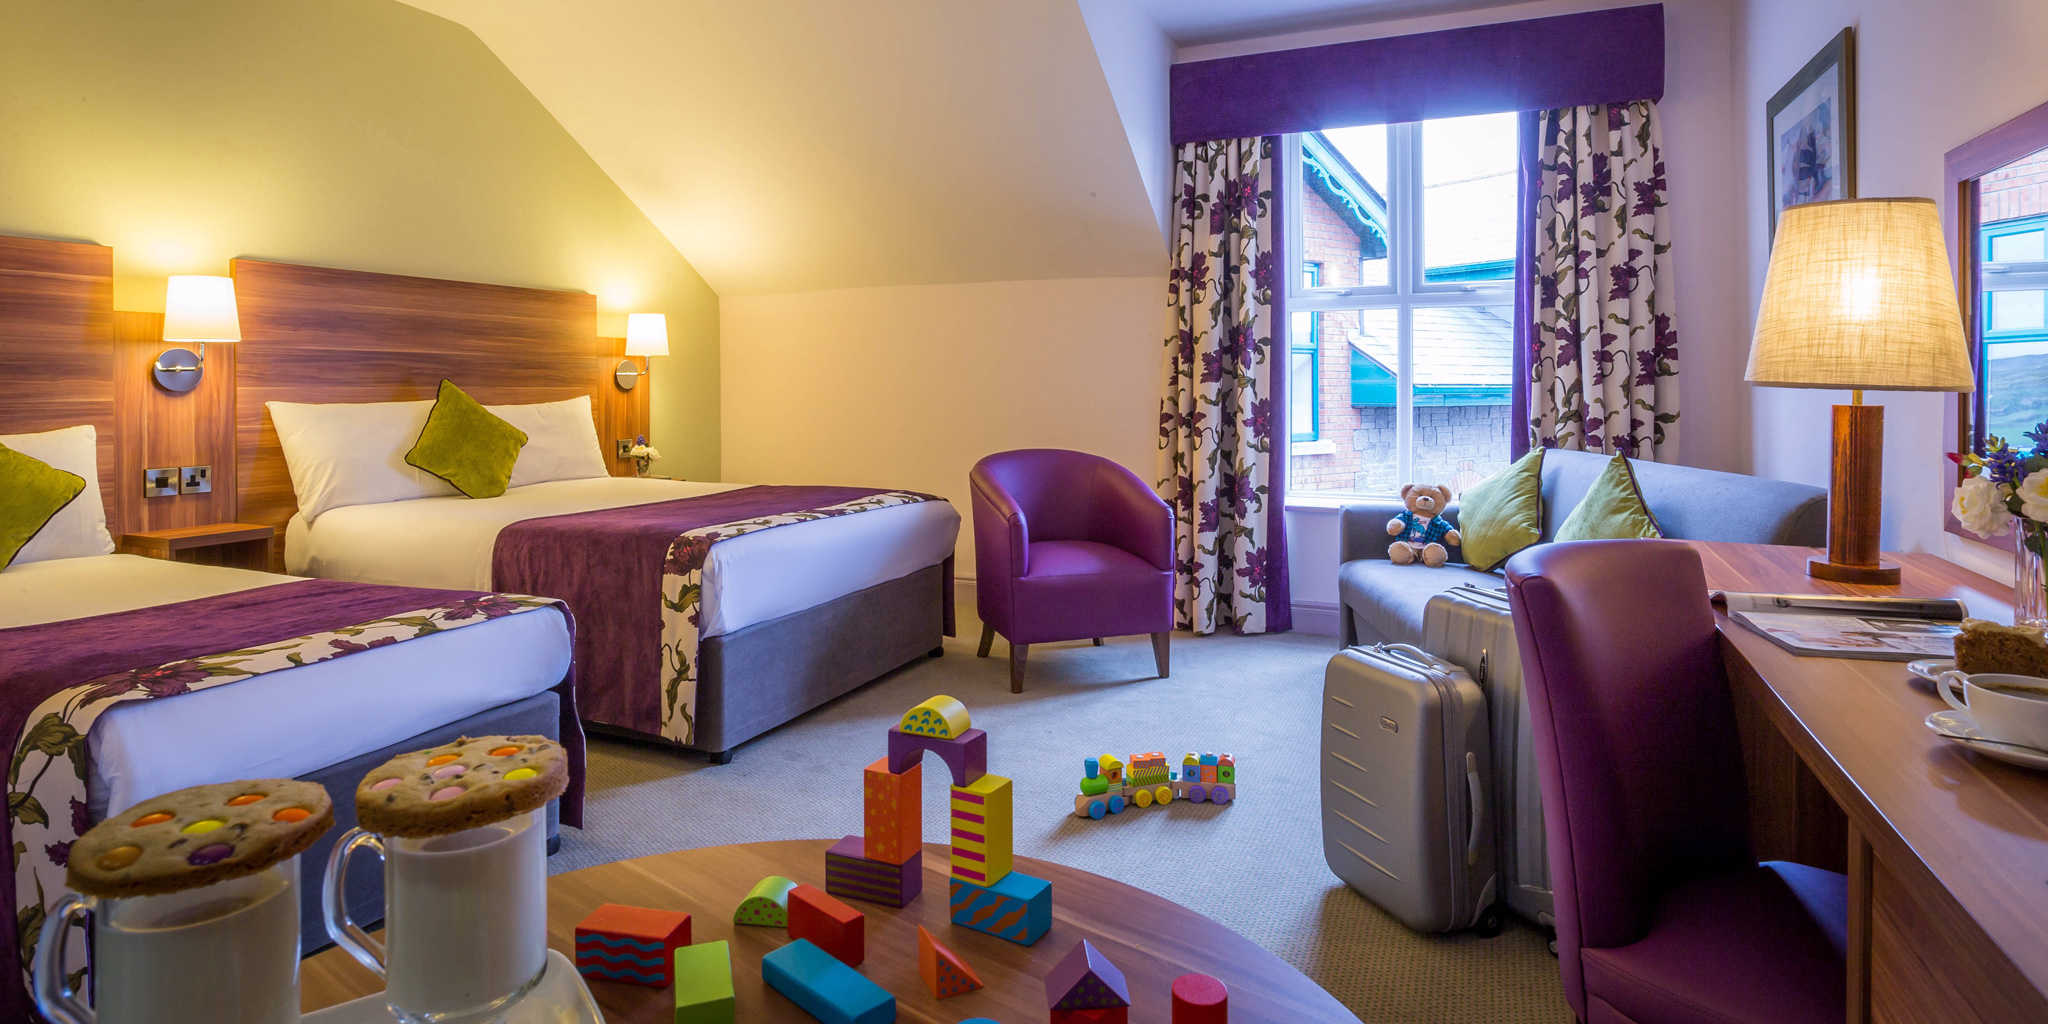 Hotel Family Room Galway